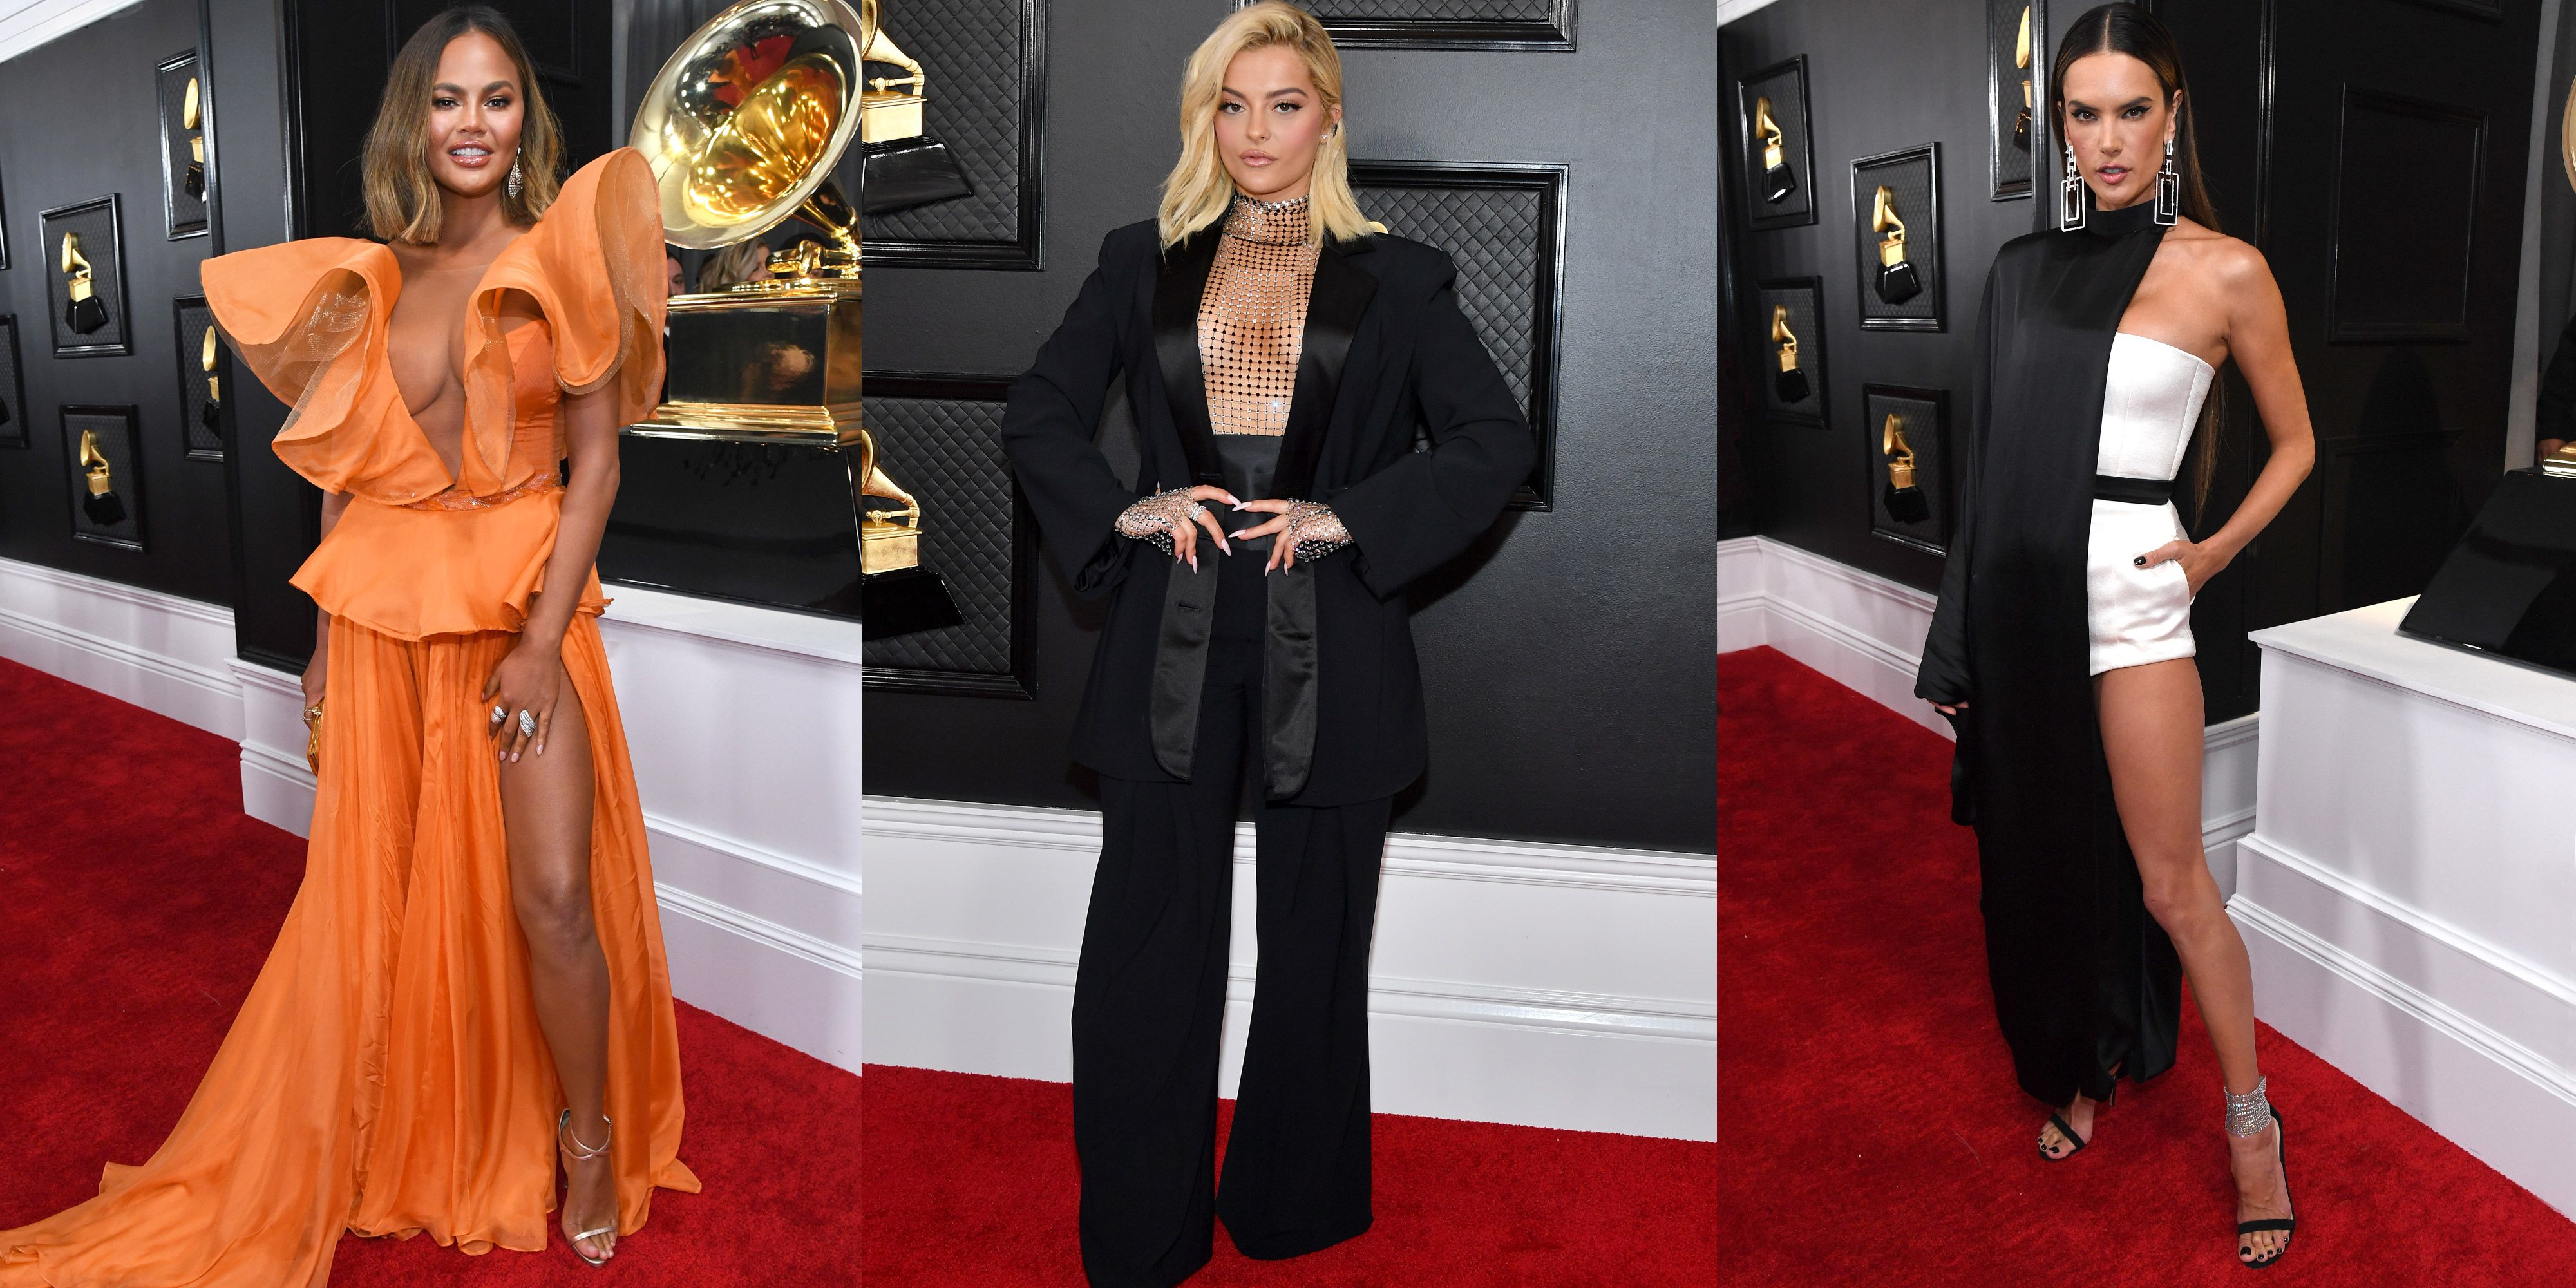 The 19 Most Scandalous Dresses at the 2020 Grammys